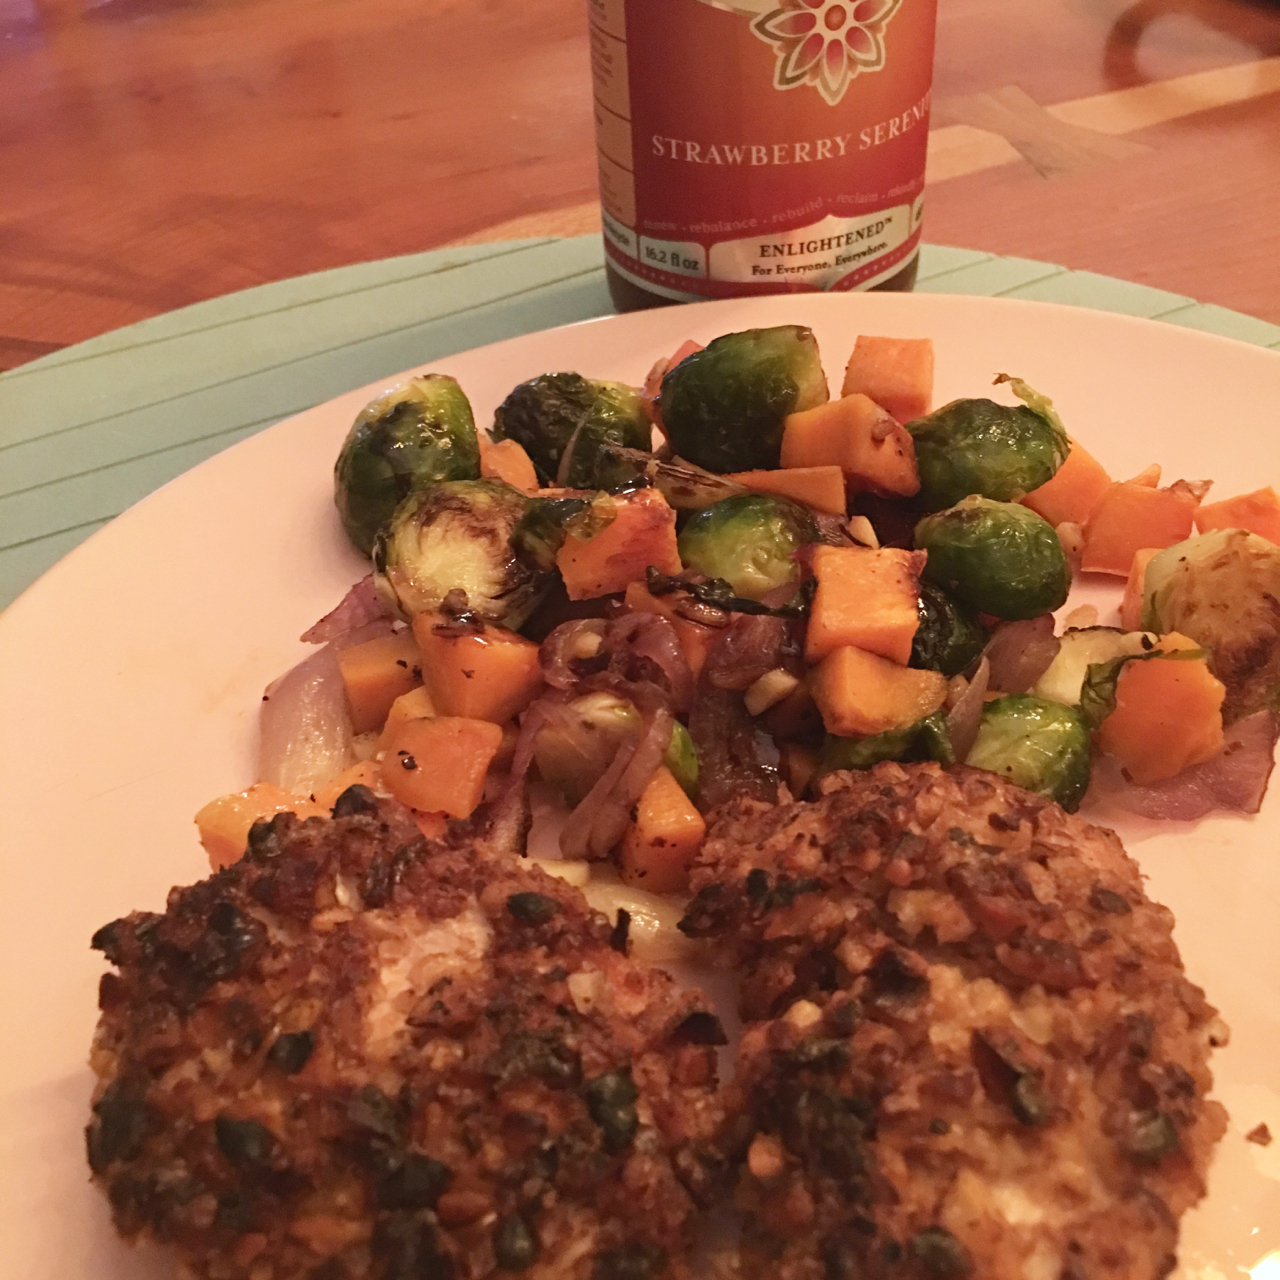 WALNUT CRUSTED CHICKEN BREAST WITH BRUSSELS SPROUTS, BUTTERNUT SQUASH AND RED ONIONS